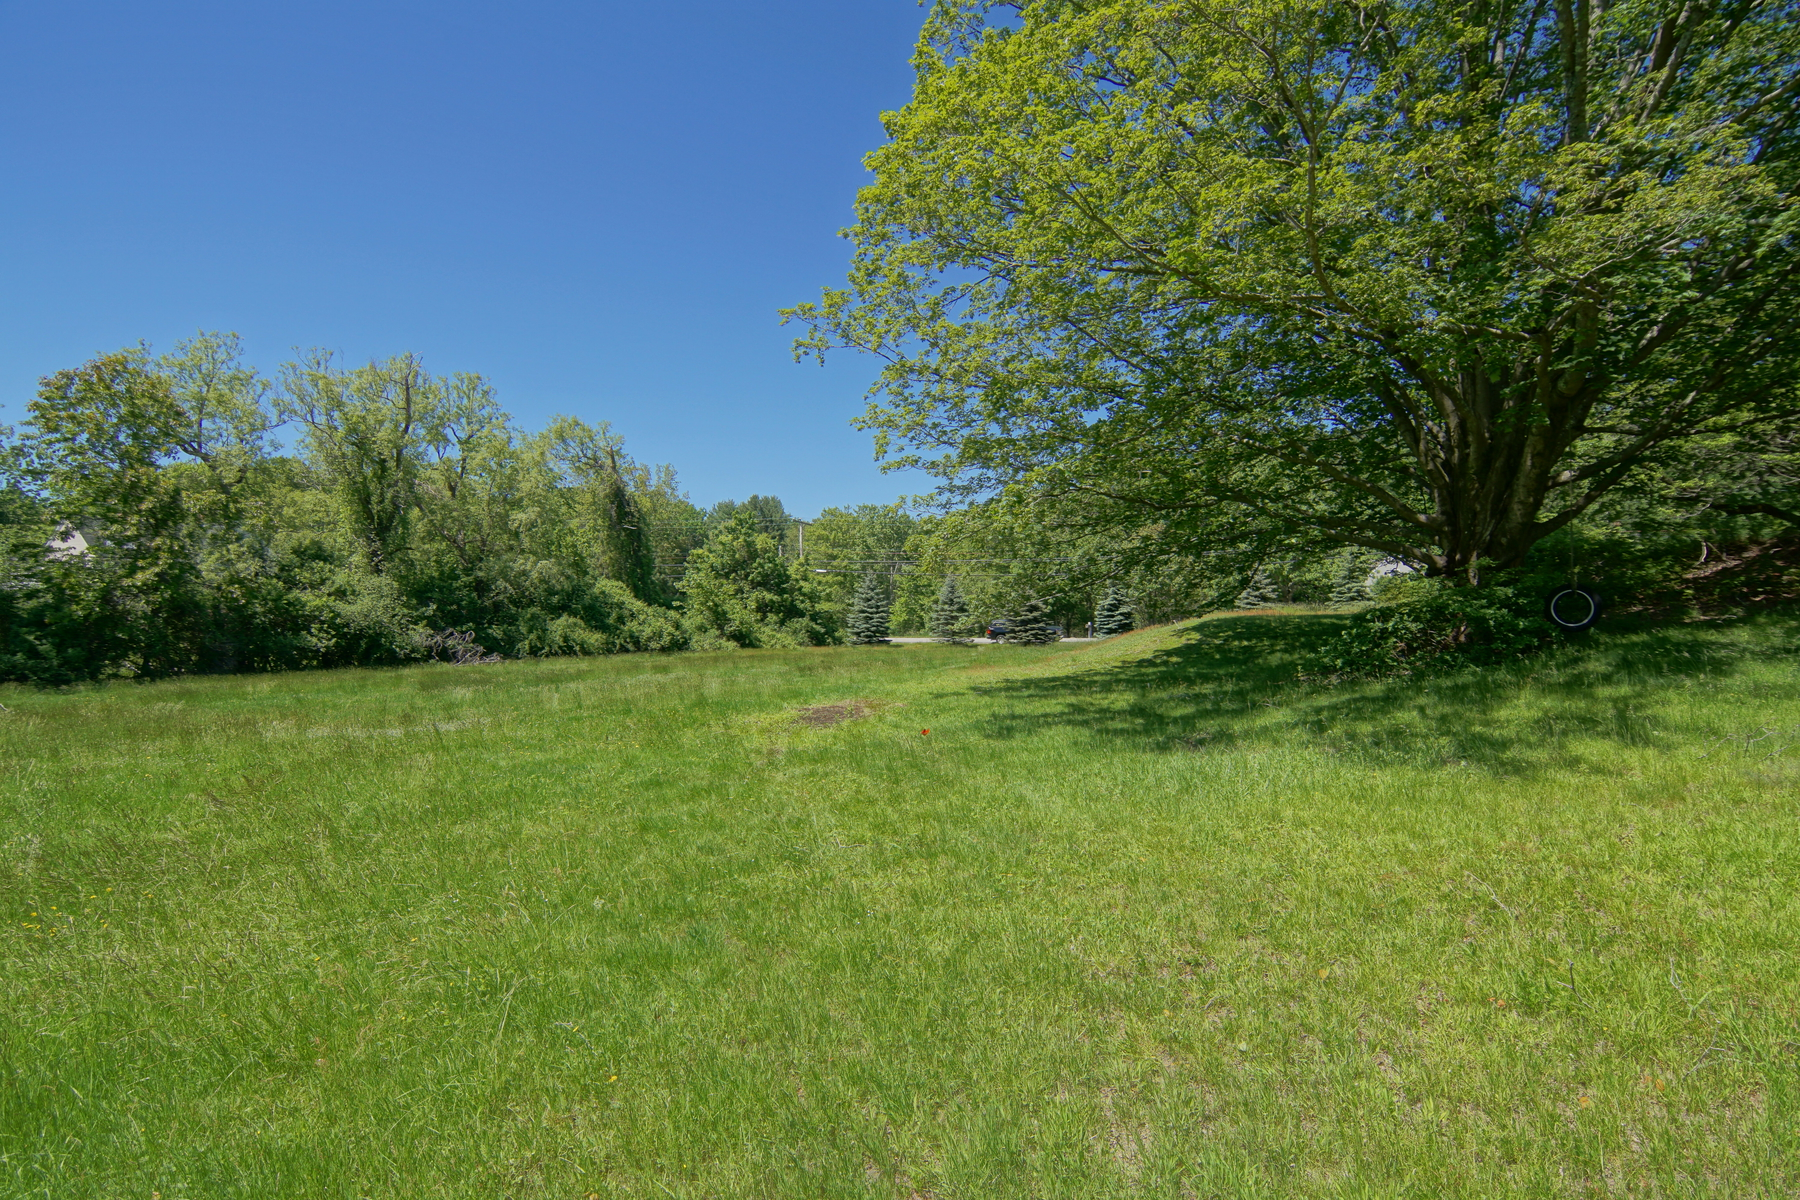 Земля для того Продажа на Ancient North Hampton Pasture Land For Sale 122 Atlantic Avenue North Hampton, Нью-Гэмпшир 03862 Соединенные Штаты